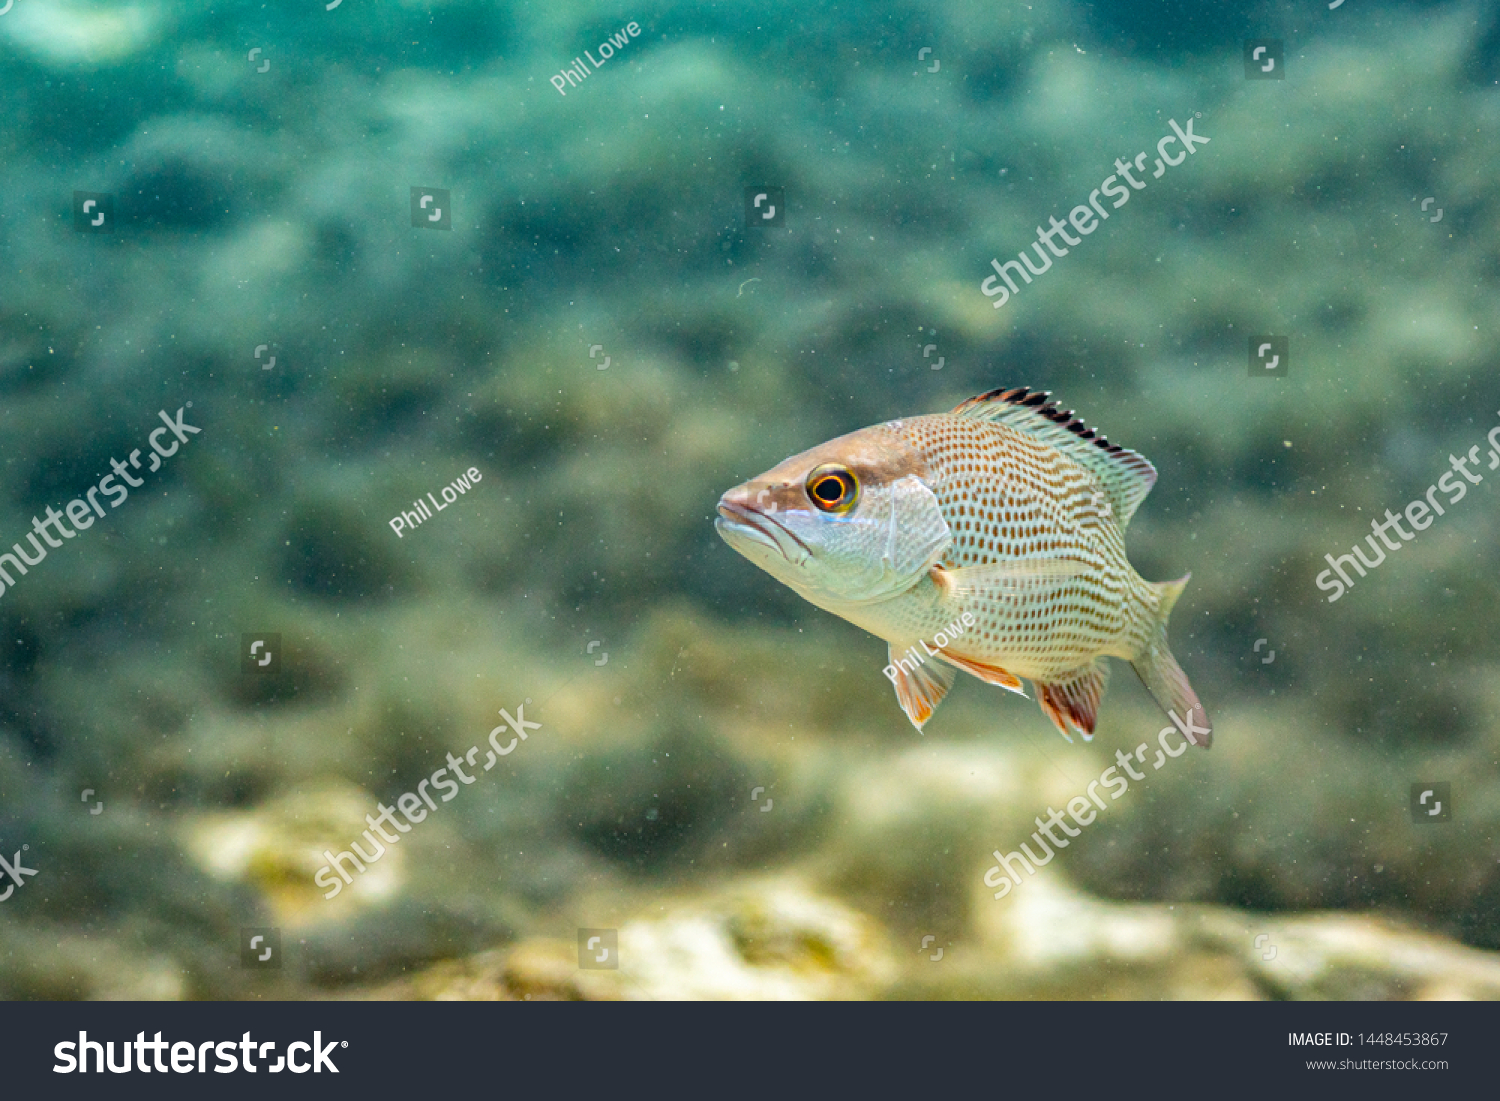 stock-photo-a-curious-mangrove-snapper-l